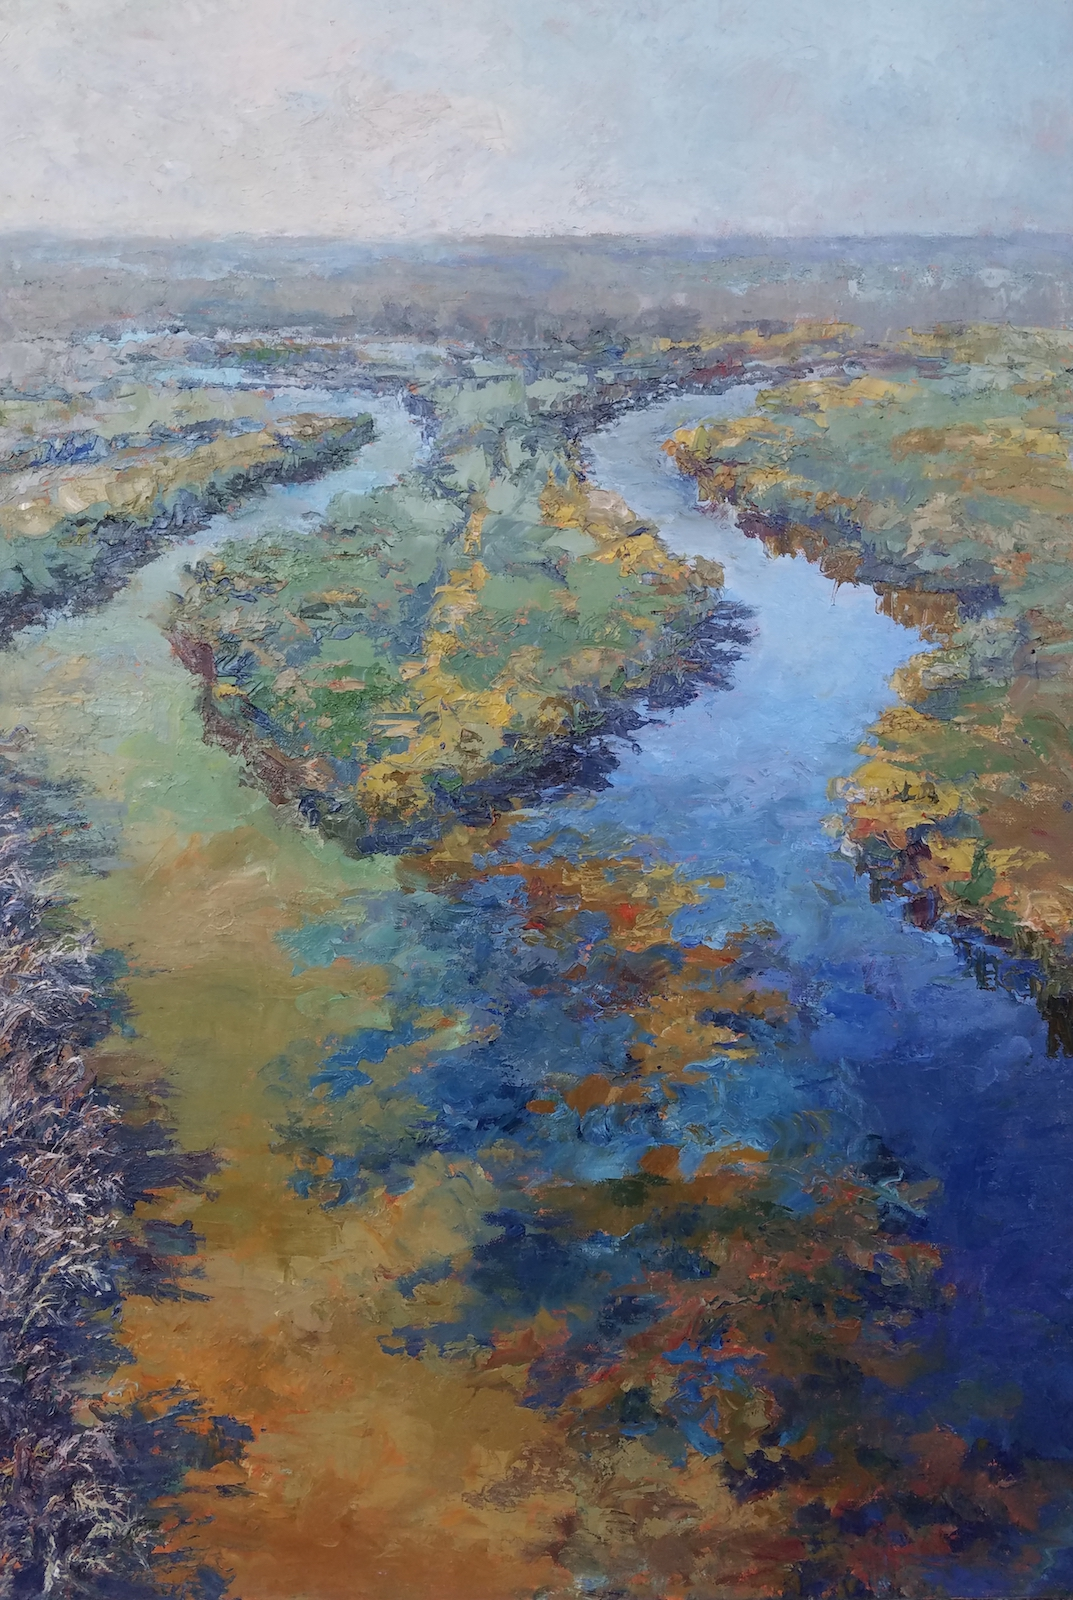 A painting of the confluence of the Minnesota and Mississippi Rivers by Greg Lecker